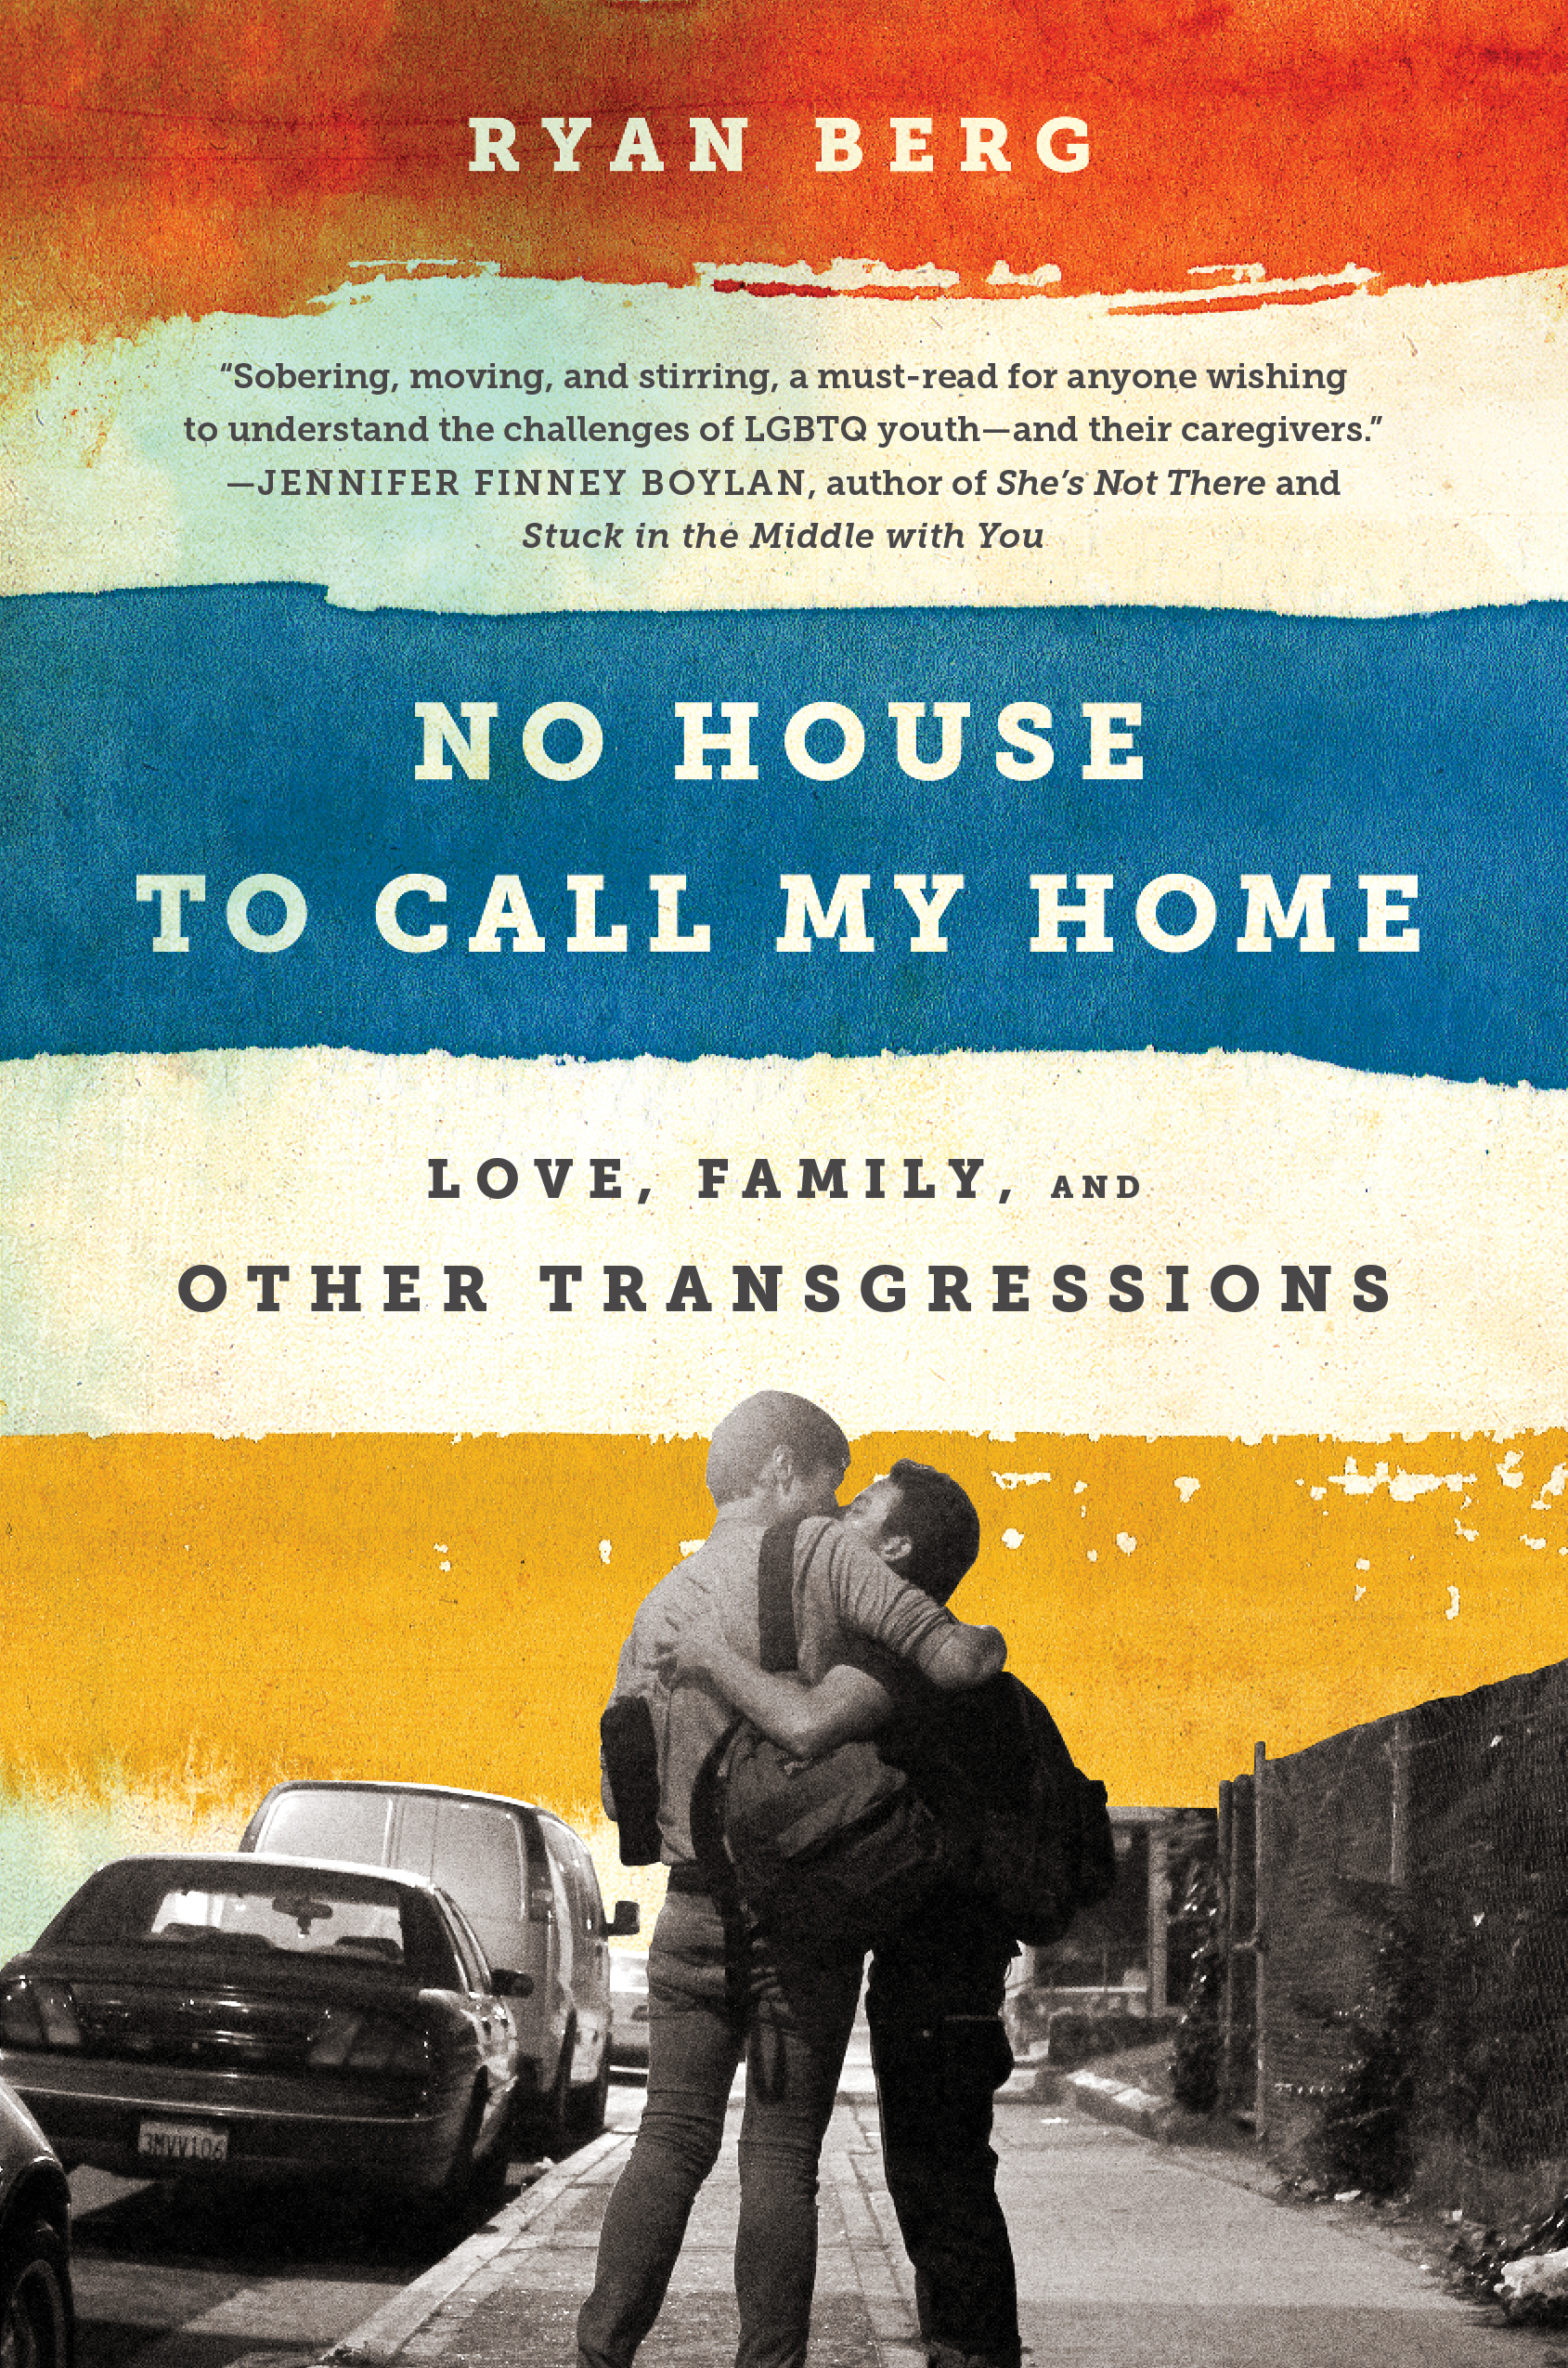 Excerpt: No House to Call My Home: Love, Family and Other Transgressions by Ryan Berg